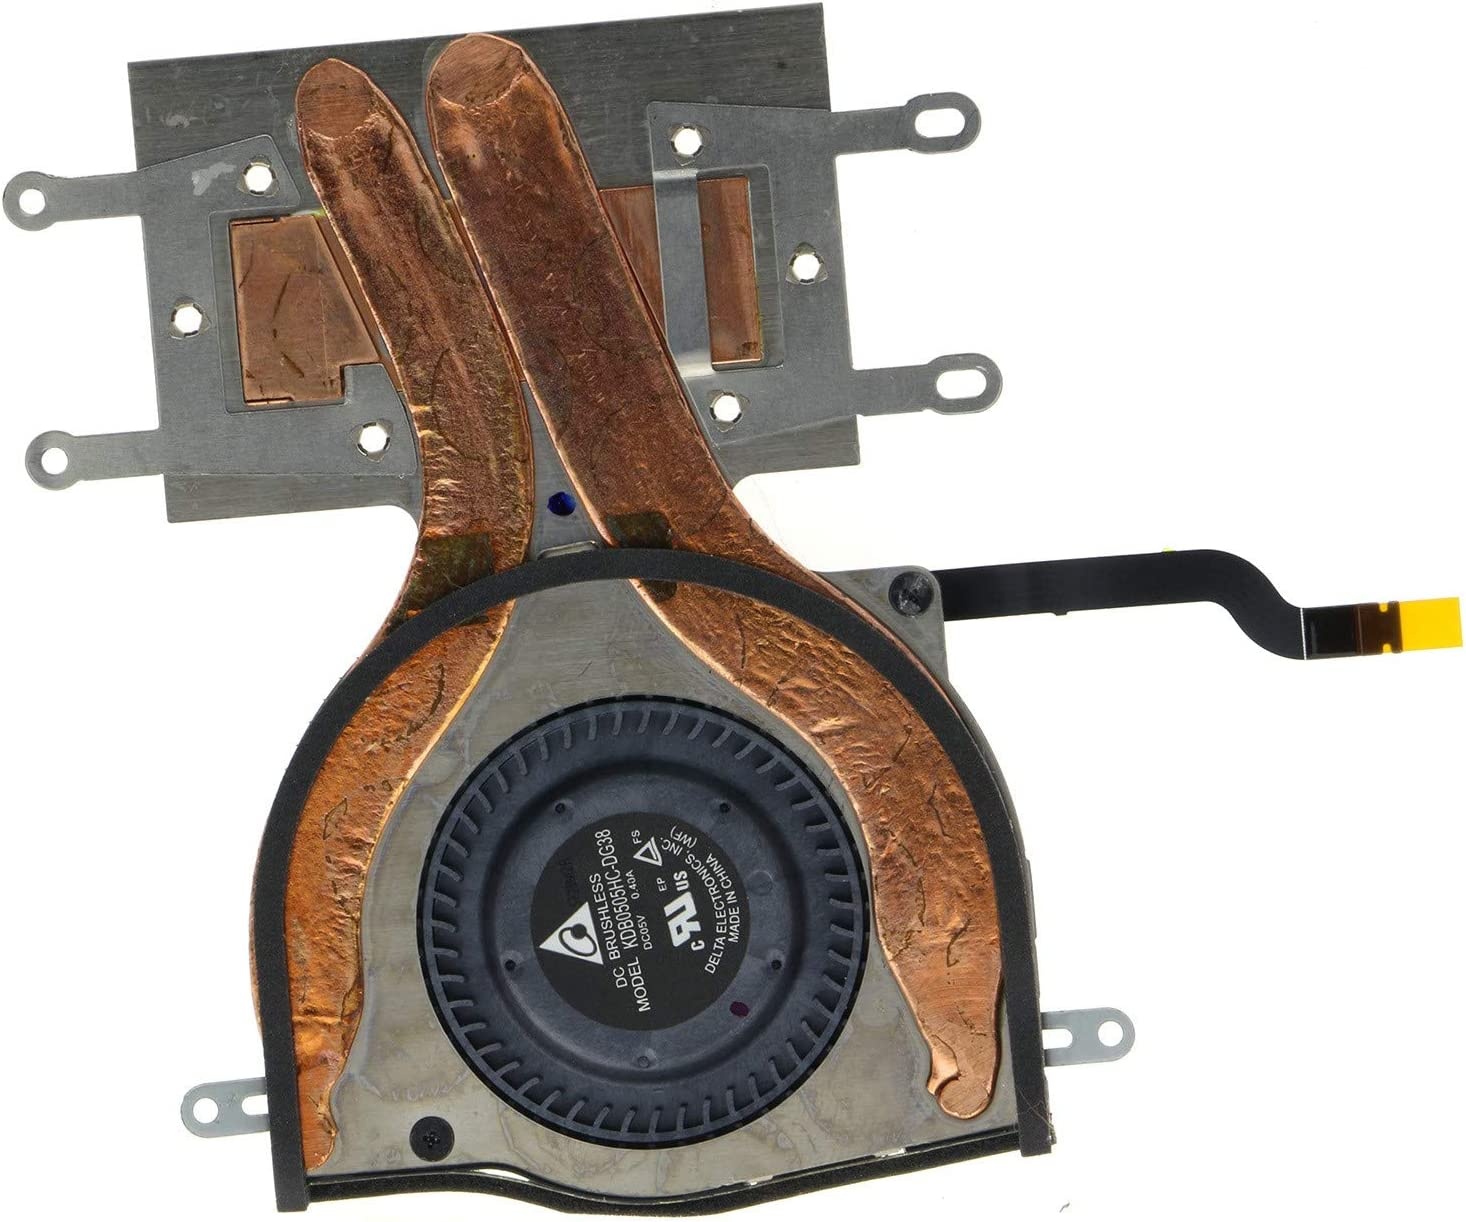 New CPU Cooling Fan for Microsoft Surface Book 1703 Nidec CC131K04